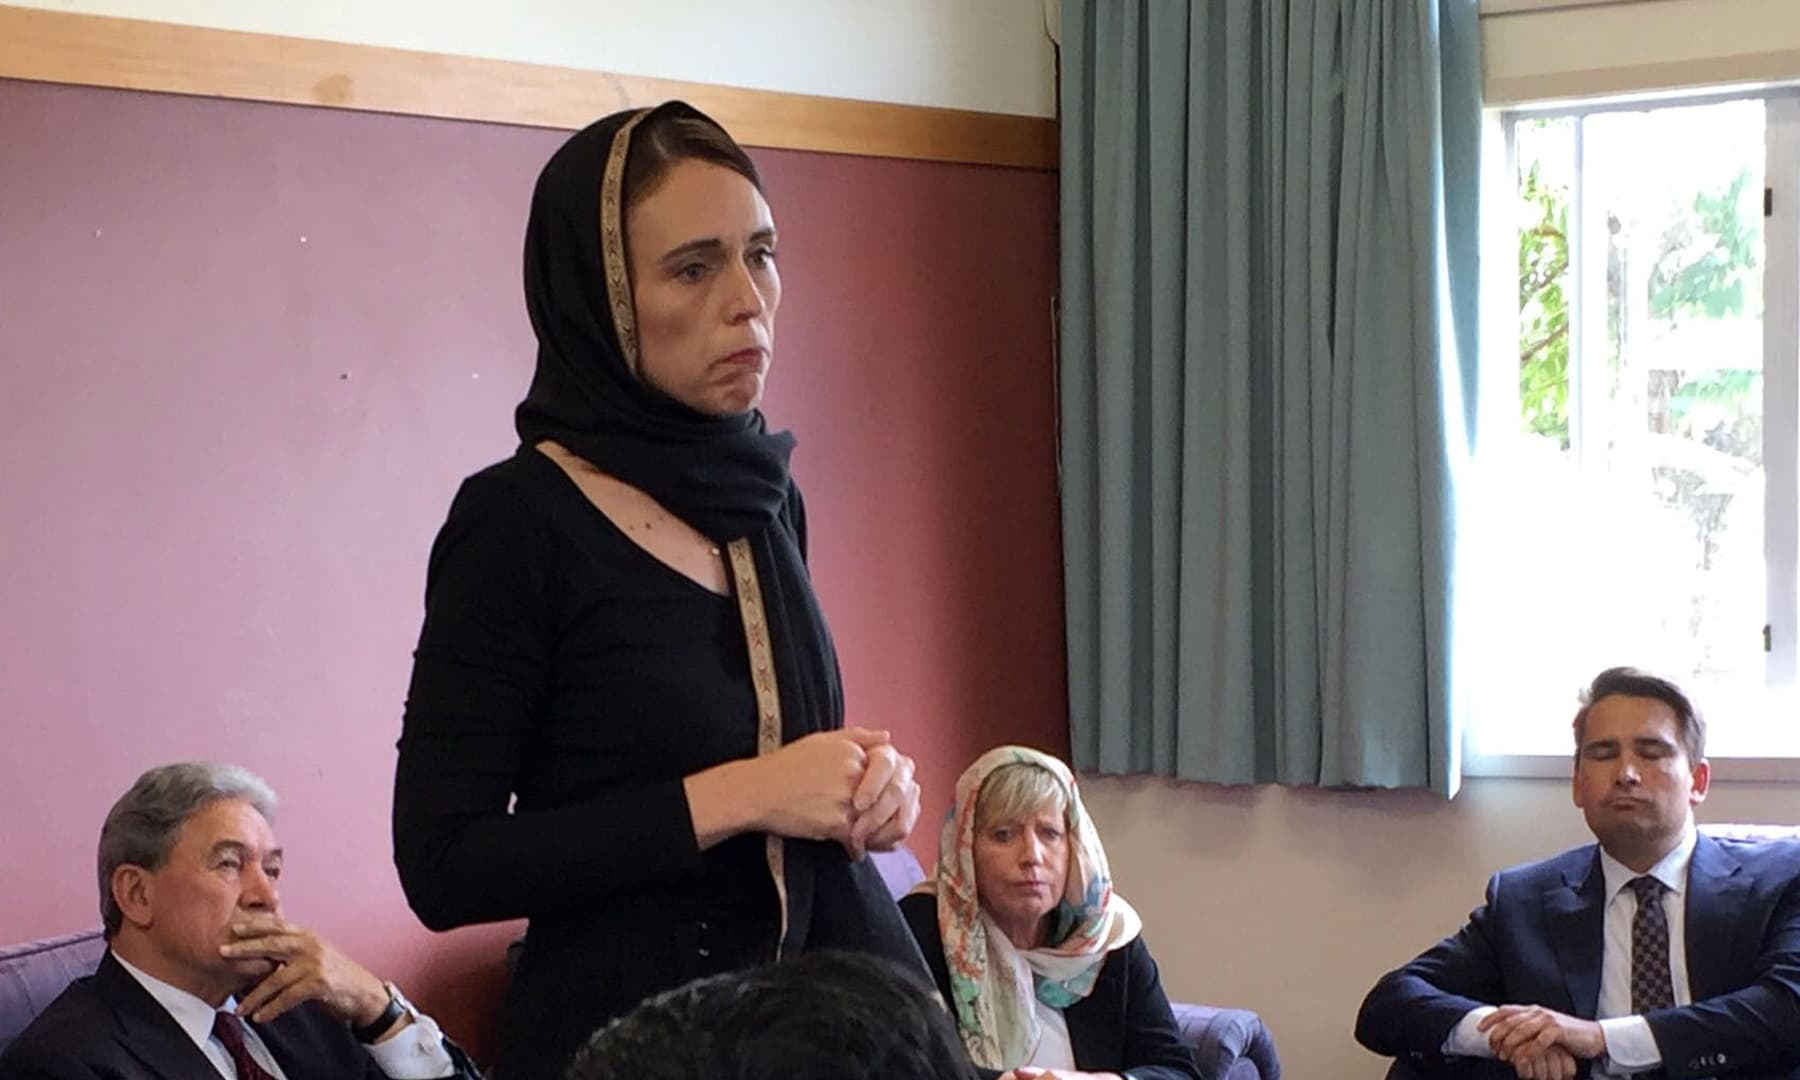 New Zealand Prime Minister Jacinda Ardern, left, speaks to representatives of the Muslim community, Saturday, March 16, 2019  at the Canterbury Refugee Centre in Christchurch, New Zealand. — AP